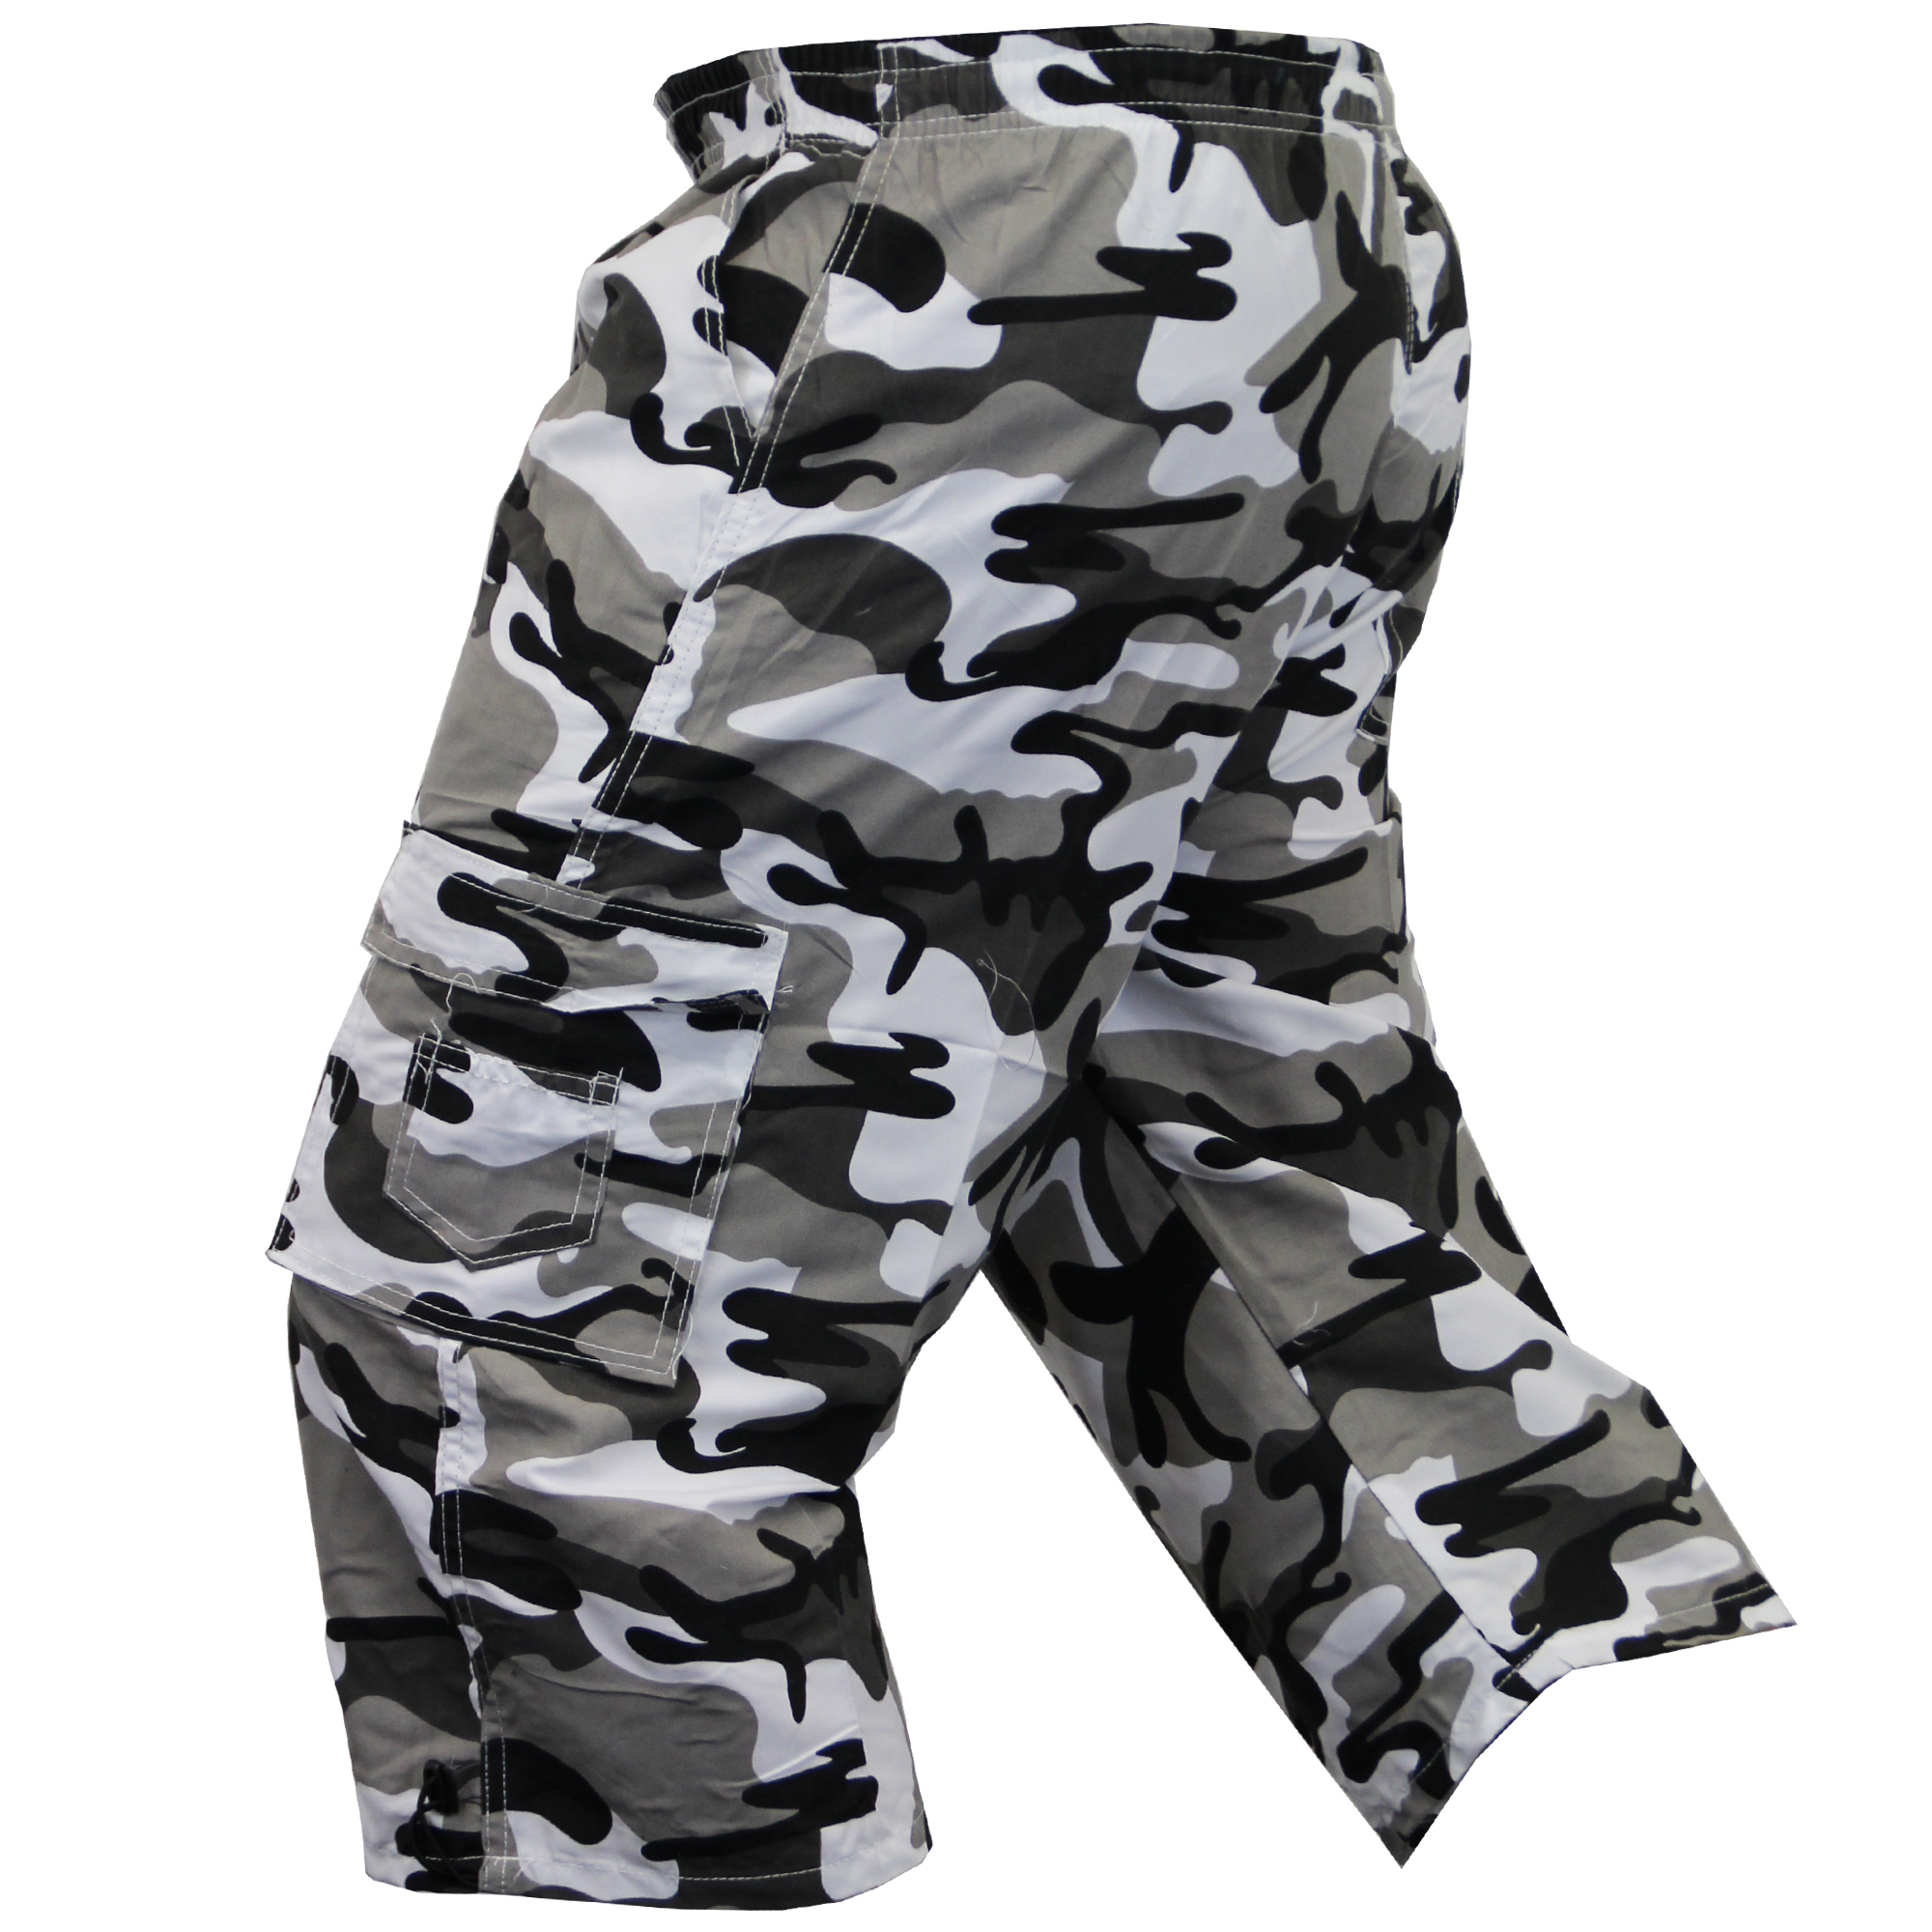 Mens-Camouflage-Combat-Cargo-Shorts-3-4-Length-Army-Military-Sports-Summer-New thumbnail 14